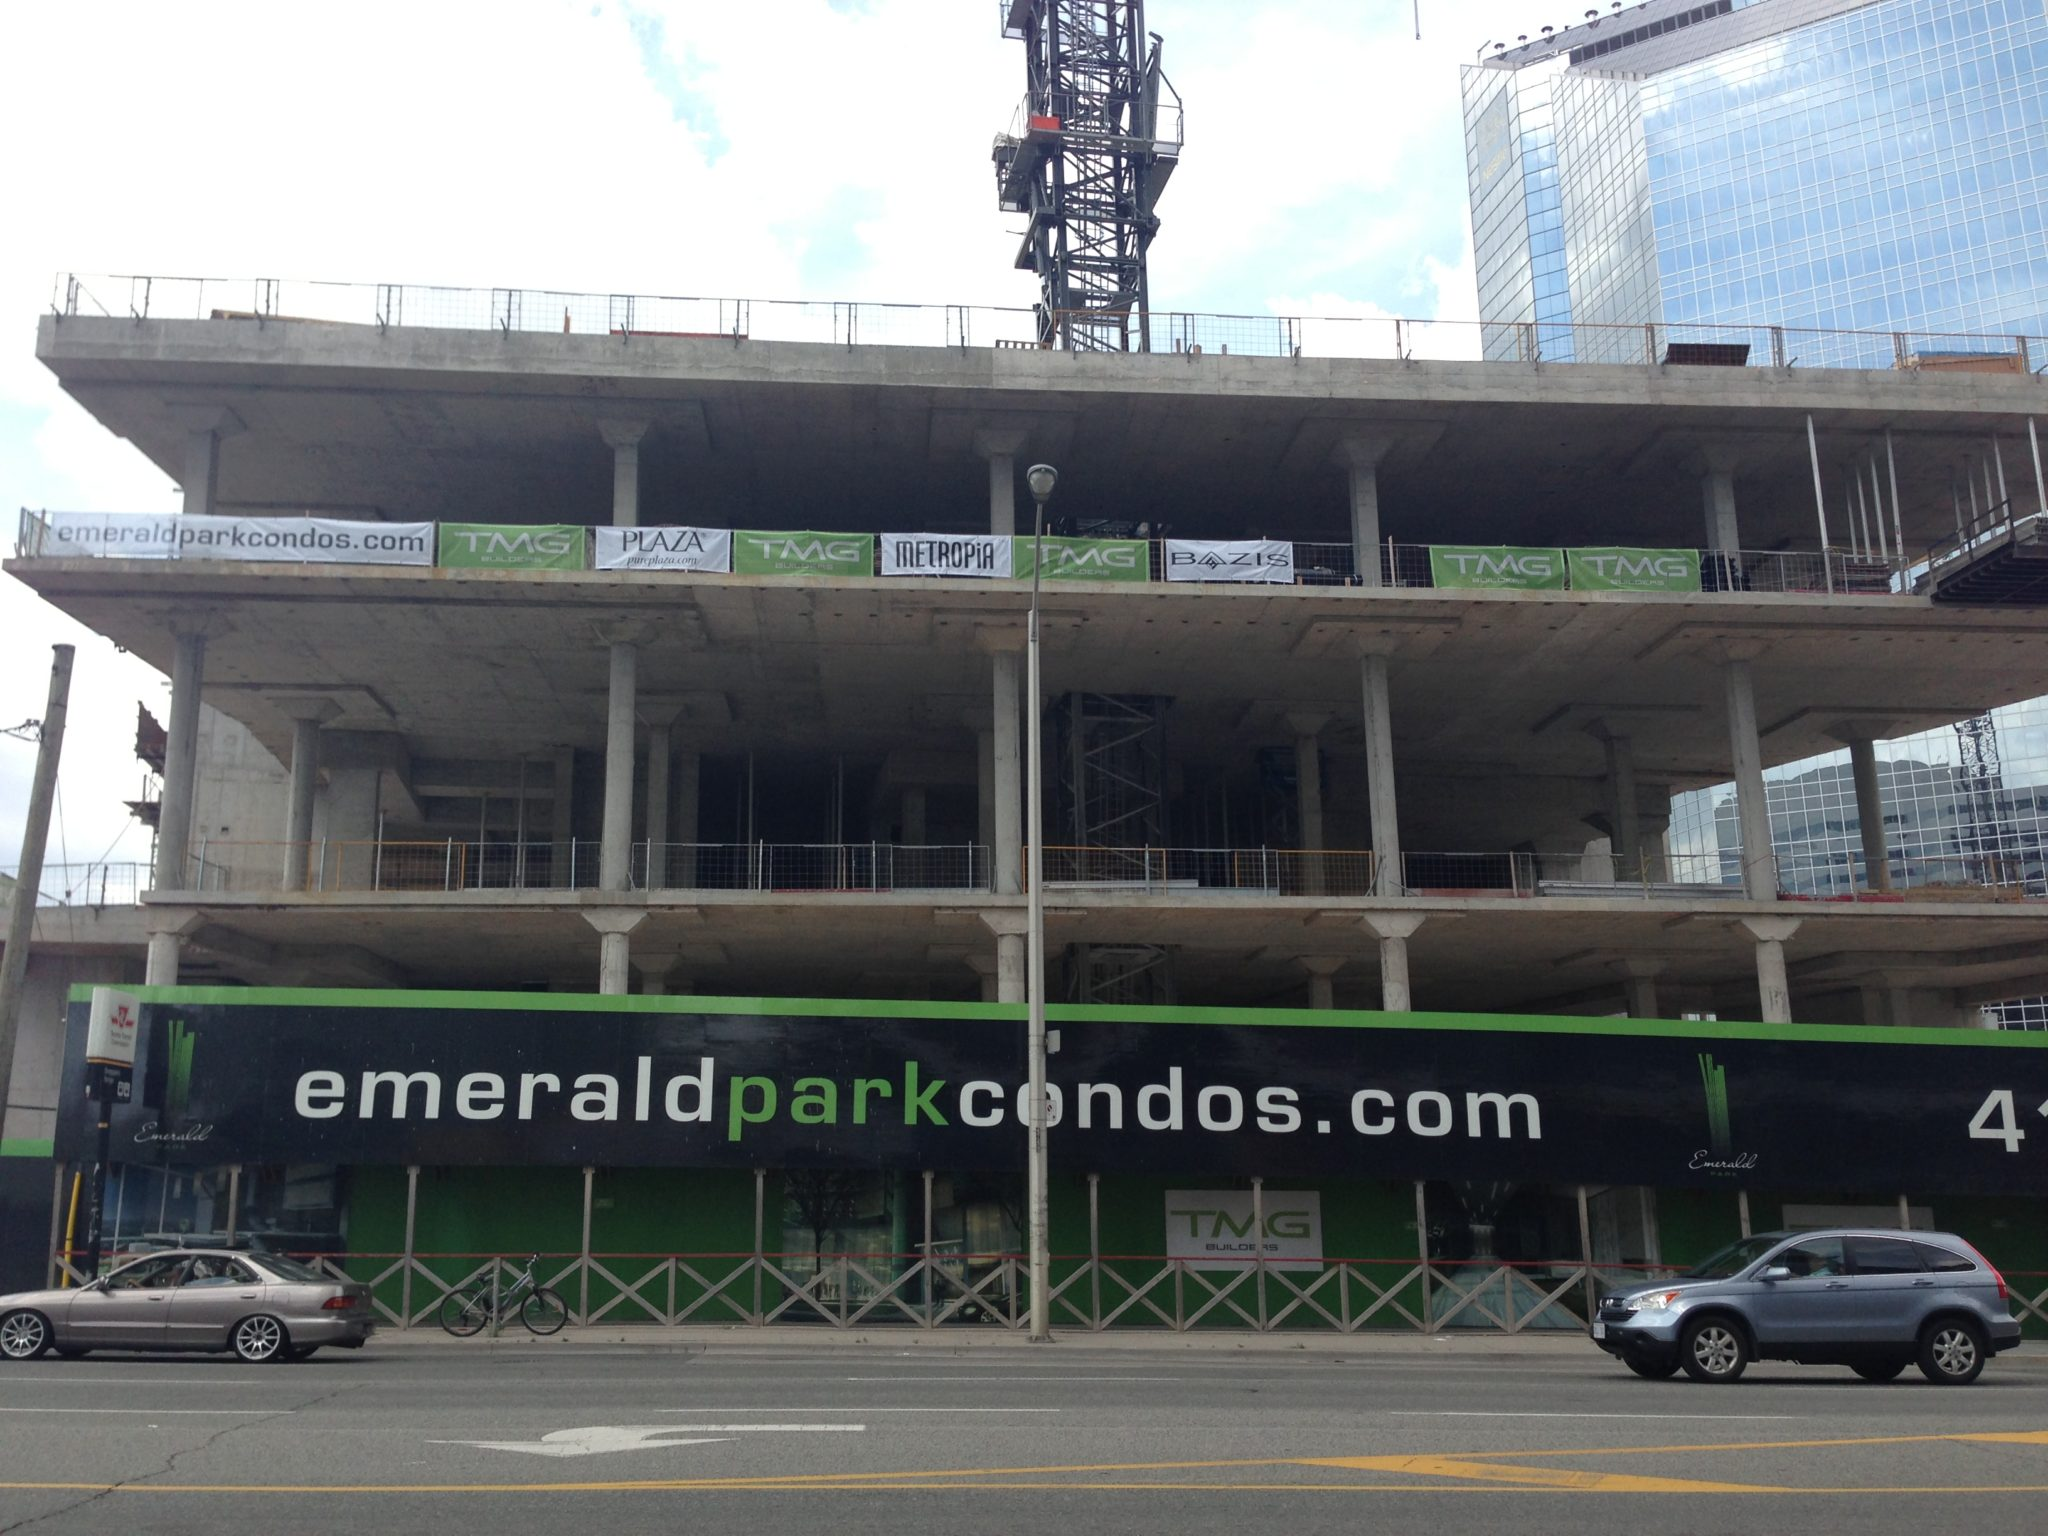 New construction condos in Toronto: Emerald Park